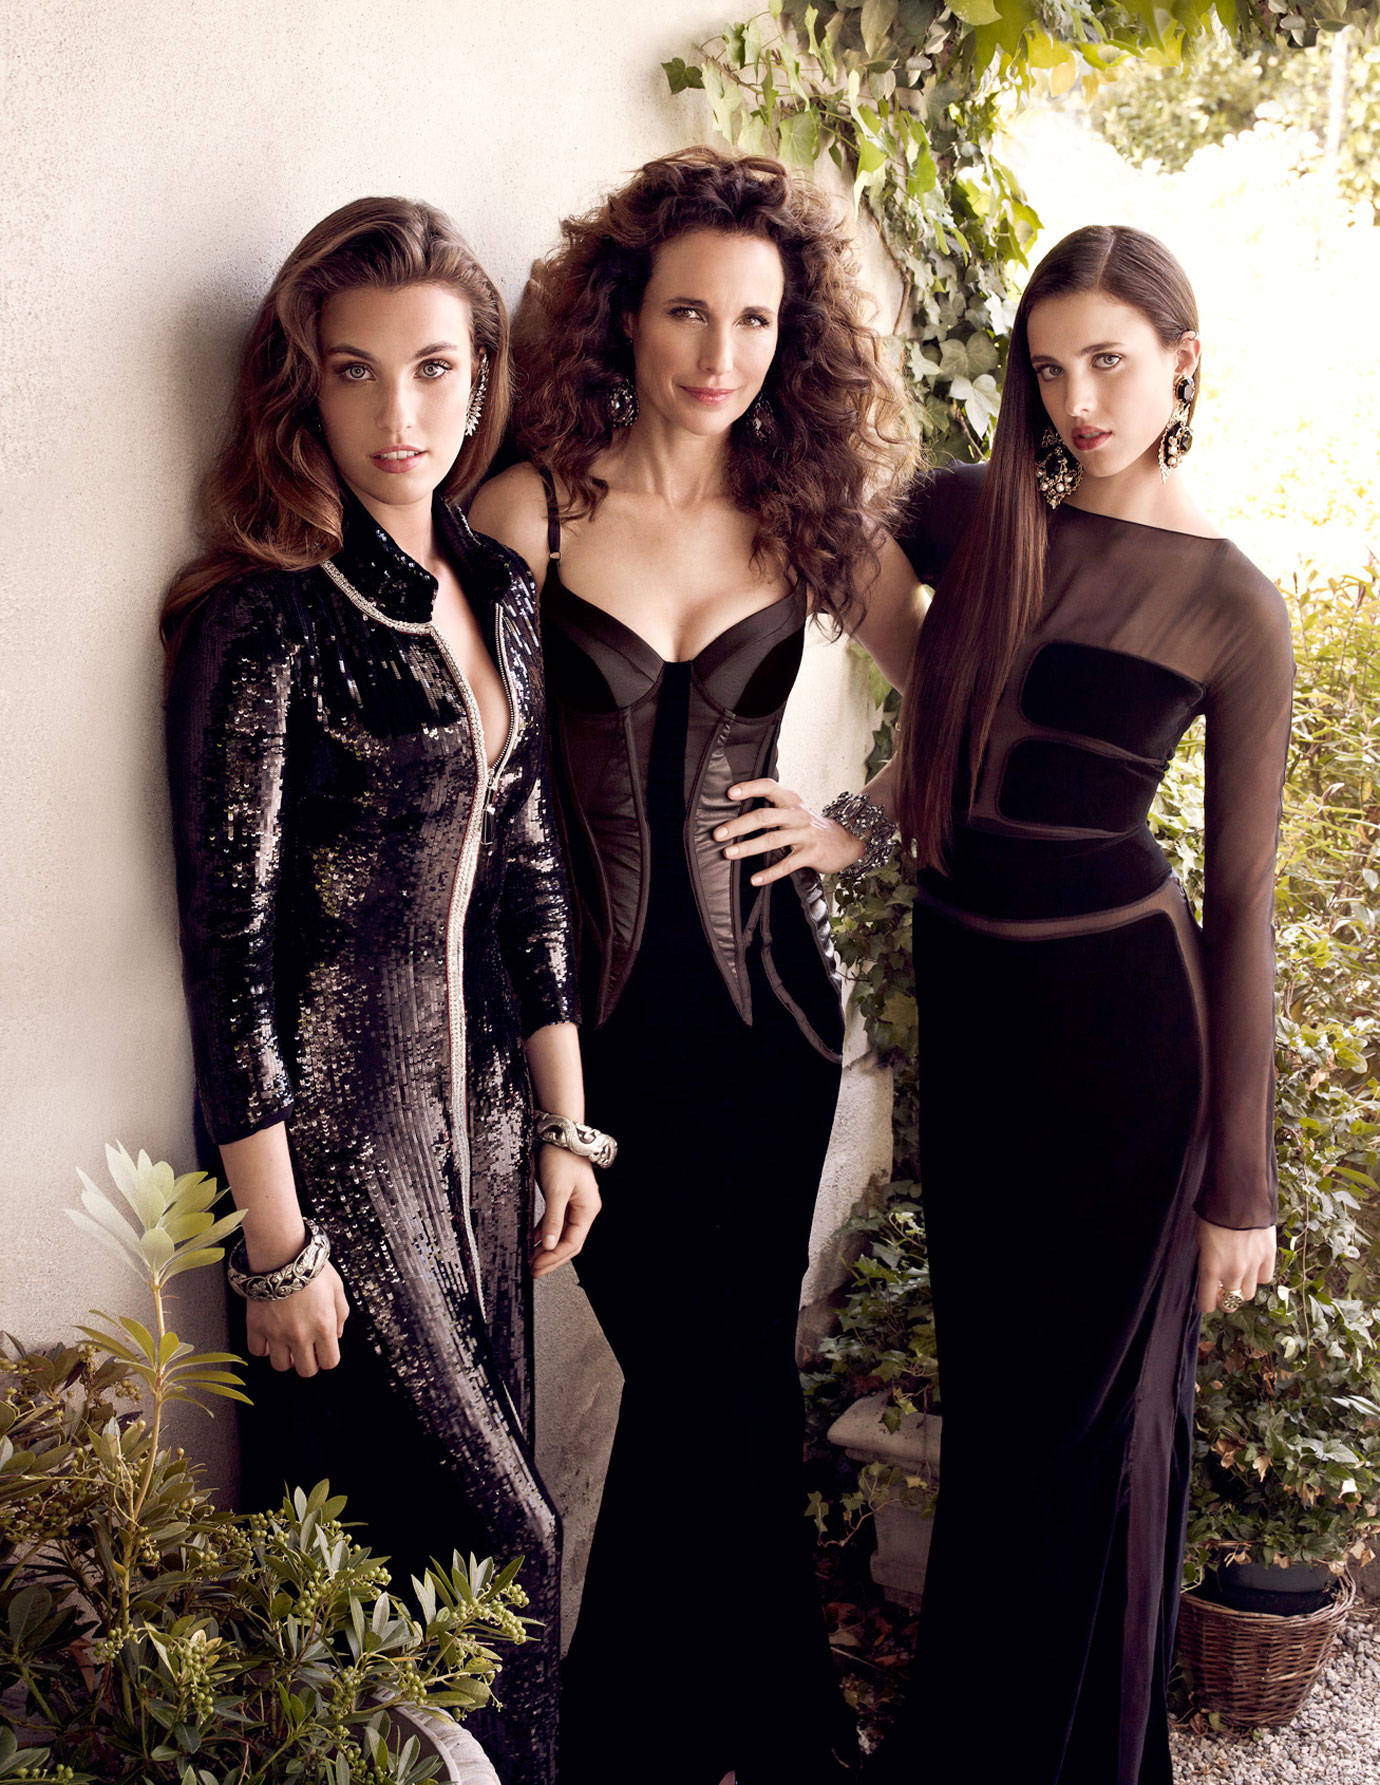 10 - Andie MacDowell and her daughters Margaret and Rainey Qualley.